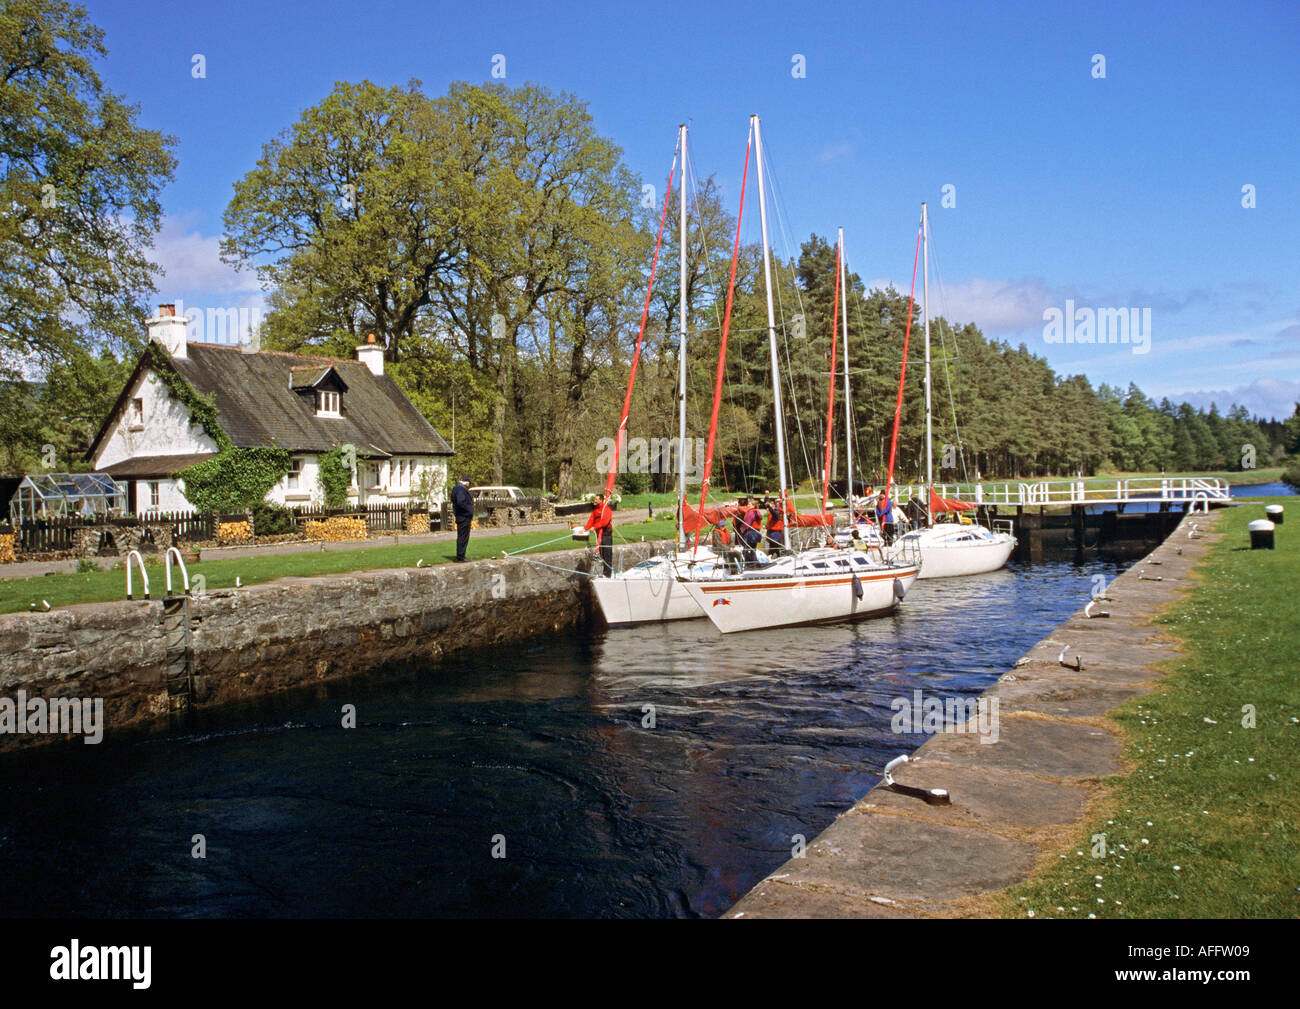 Kytra Lock near Fort Augustus on the Caledonian Canal - Stock Image